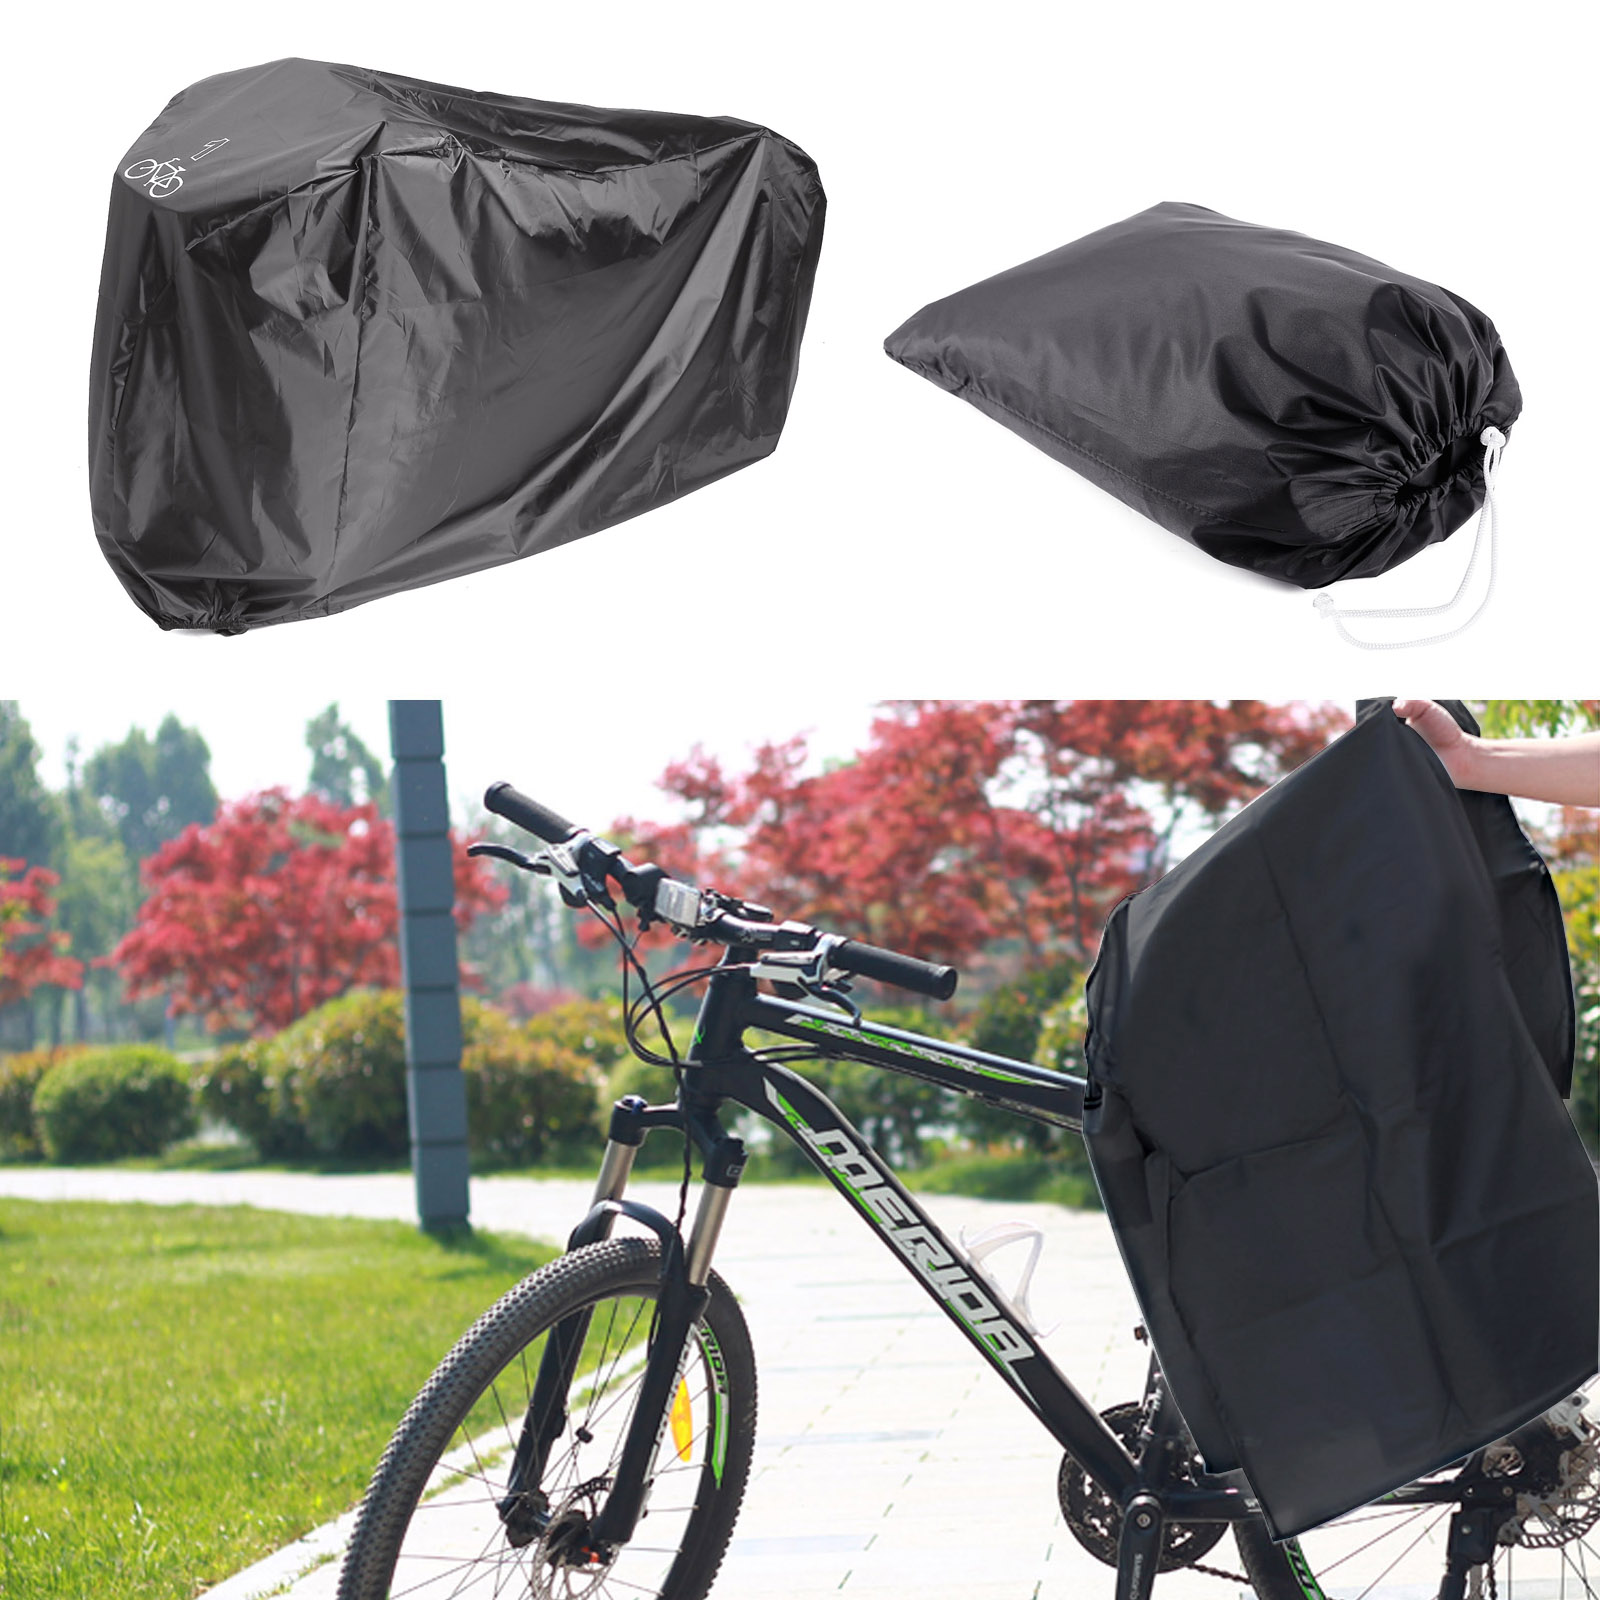 Universal Waterproof Bike Cover Bicycle Cycle Storage Outdoor Rain Snow Cover